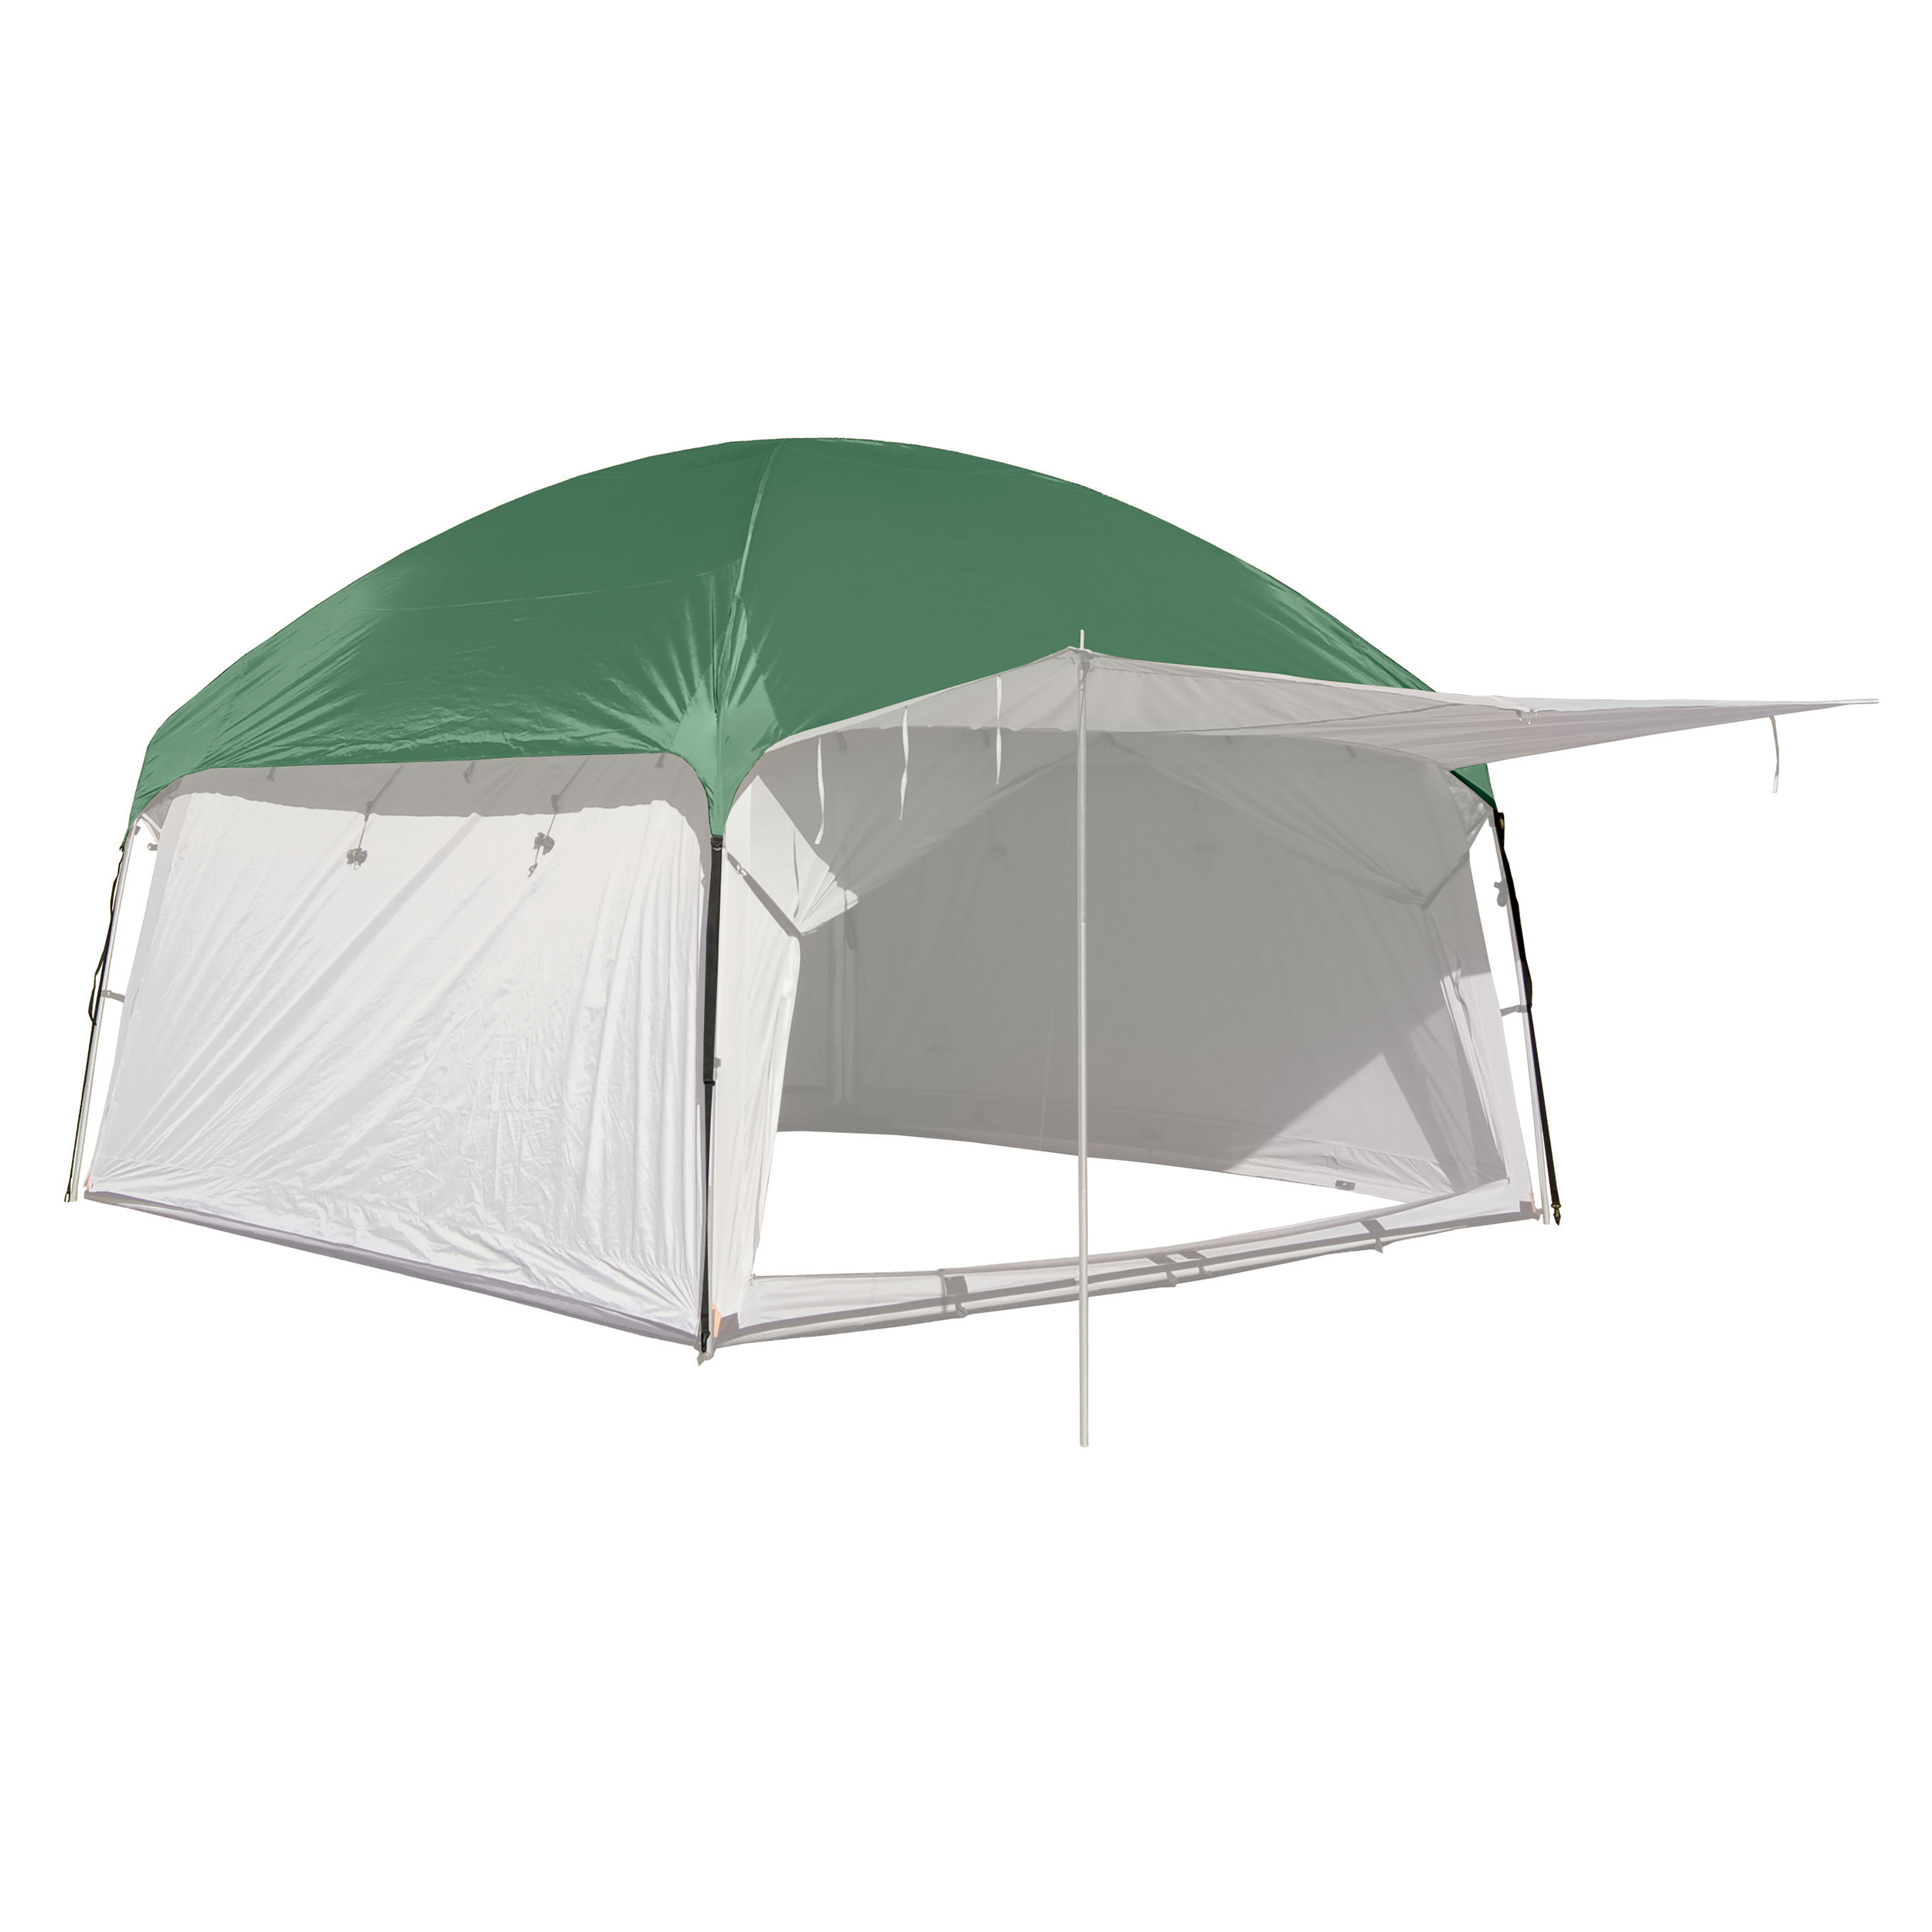 PahaQue Screen Room Rainfly 10x10-Green